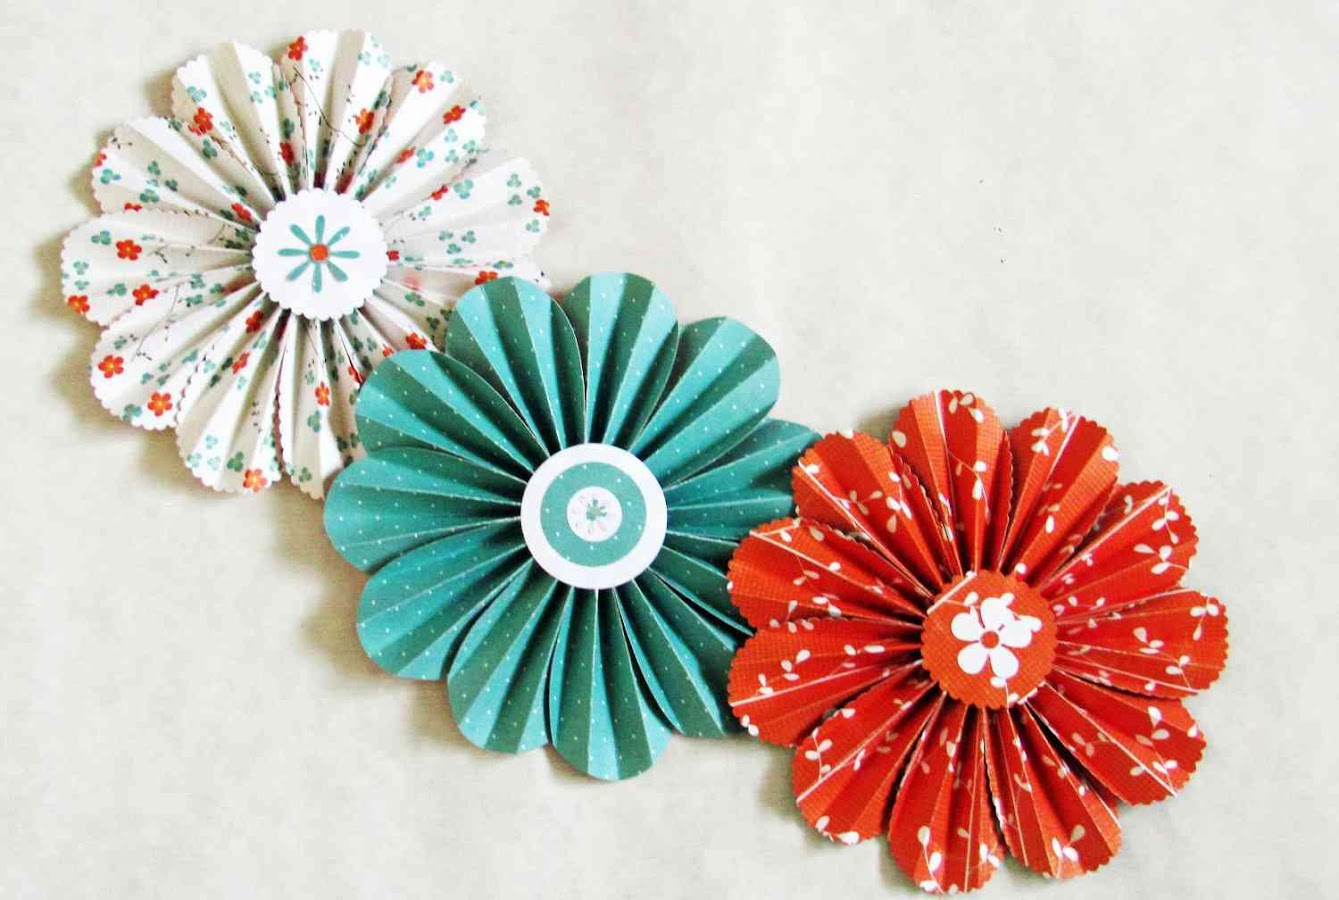 Paper flower ideas gallery flower decoration ideas modern ideas for paper flowers mold best evening gown inspiration paper flower ideas images flower decoration mightylinksfo